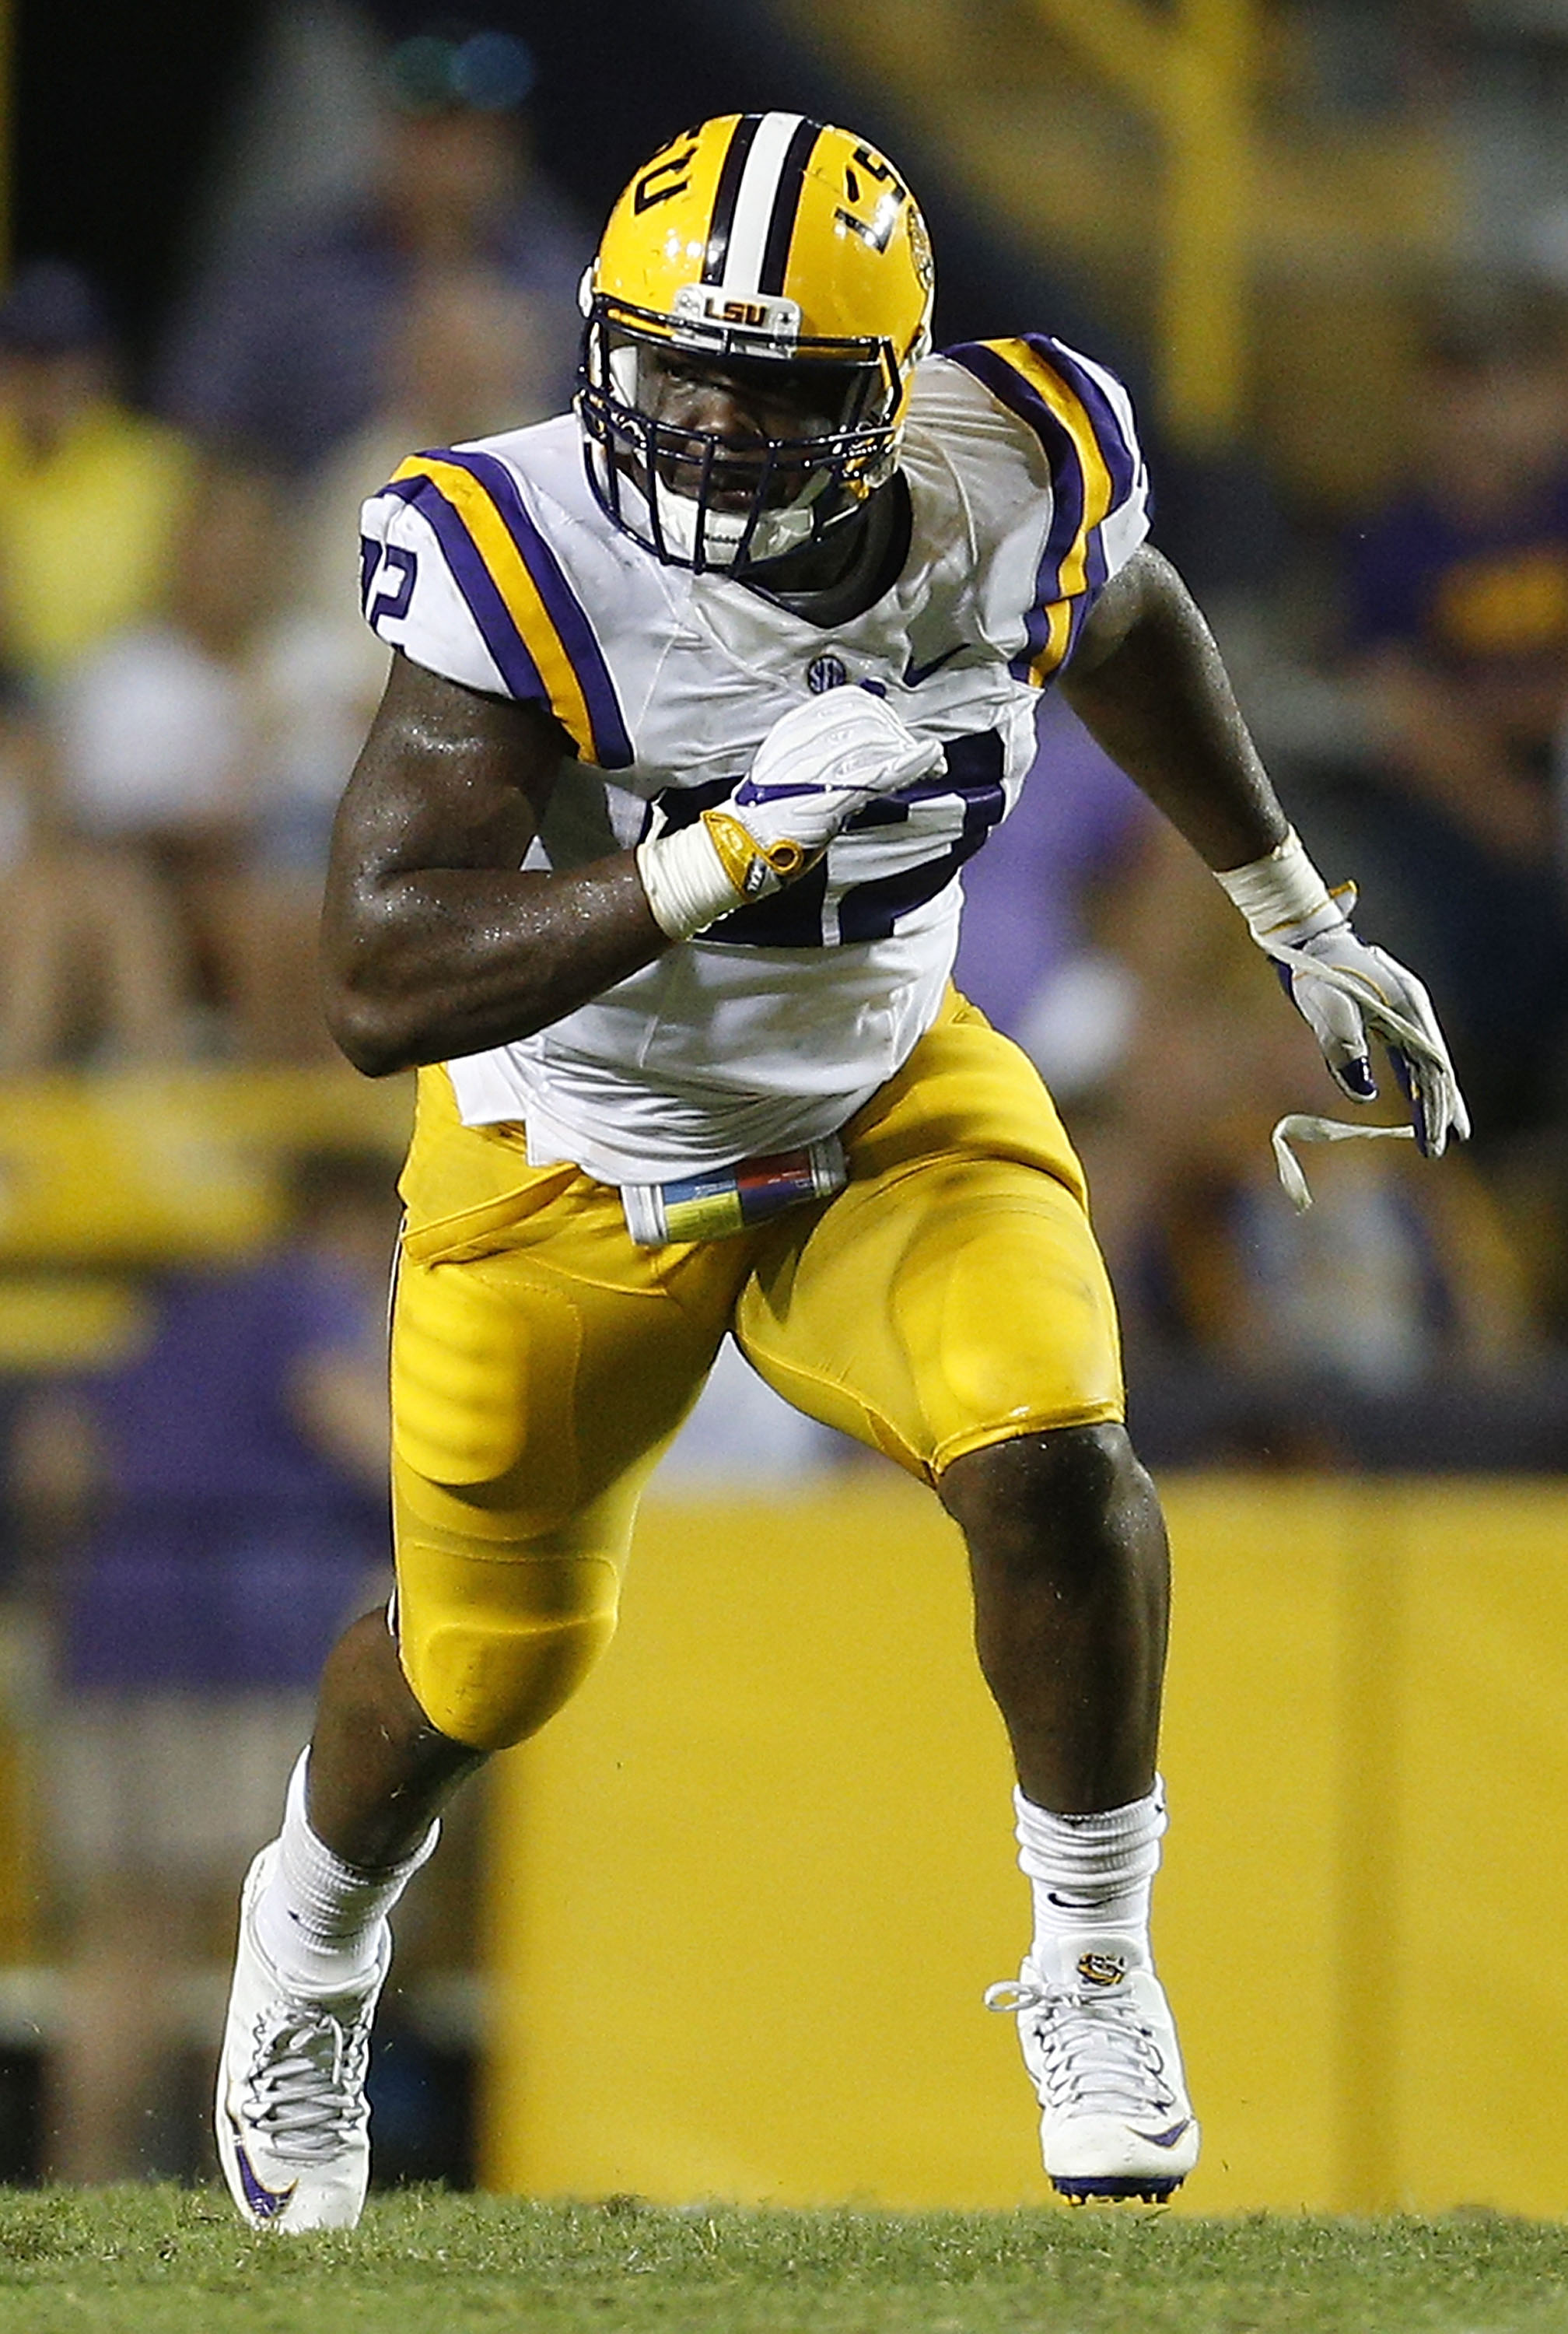 Lewis Neal #92 of the LSU Tigers defends during a game at Tiger Stadium on September 10, 2016 in Baton Rouge, Louisiana.